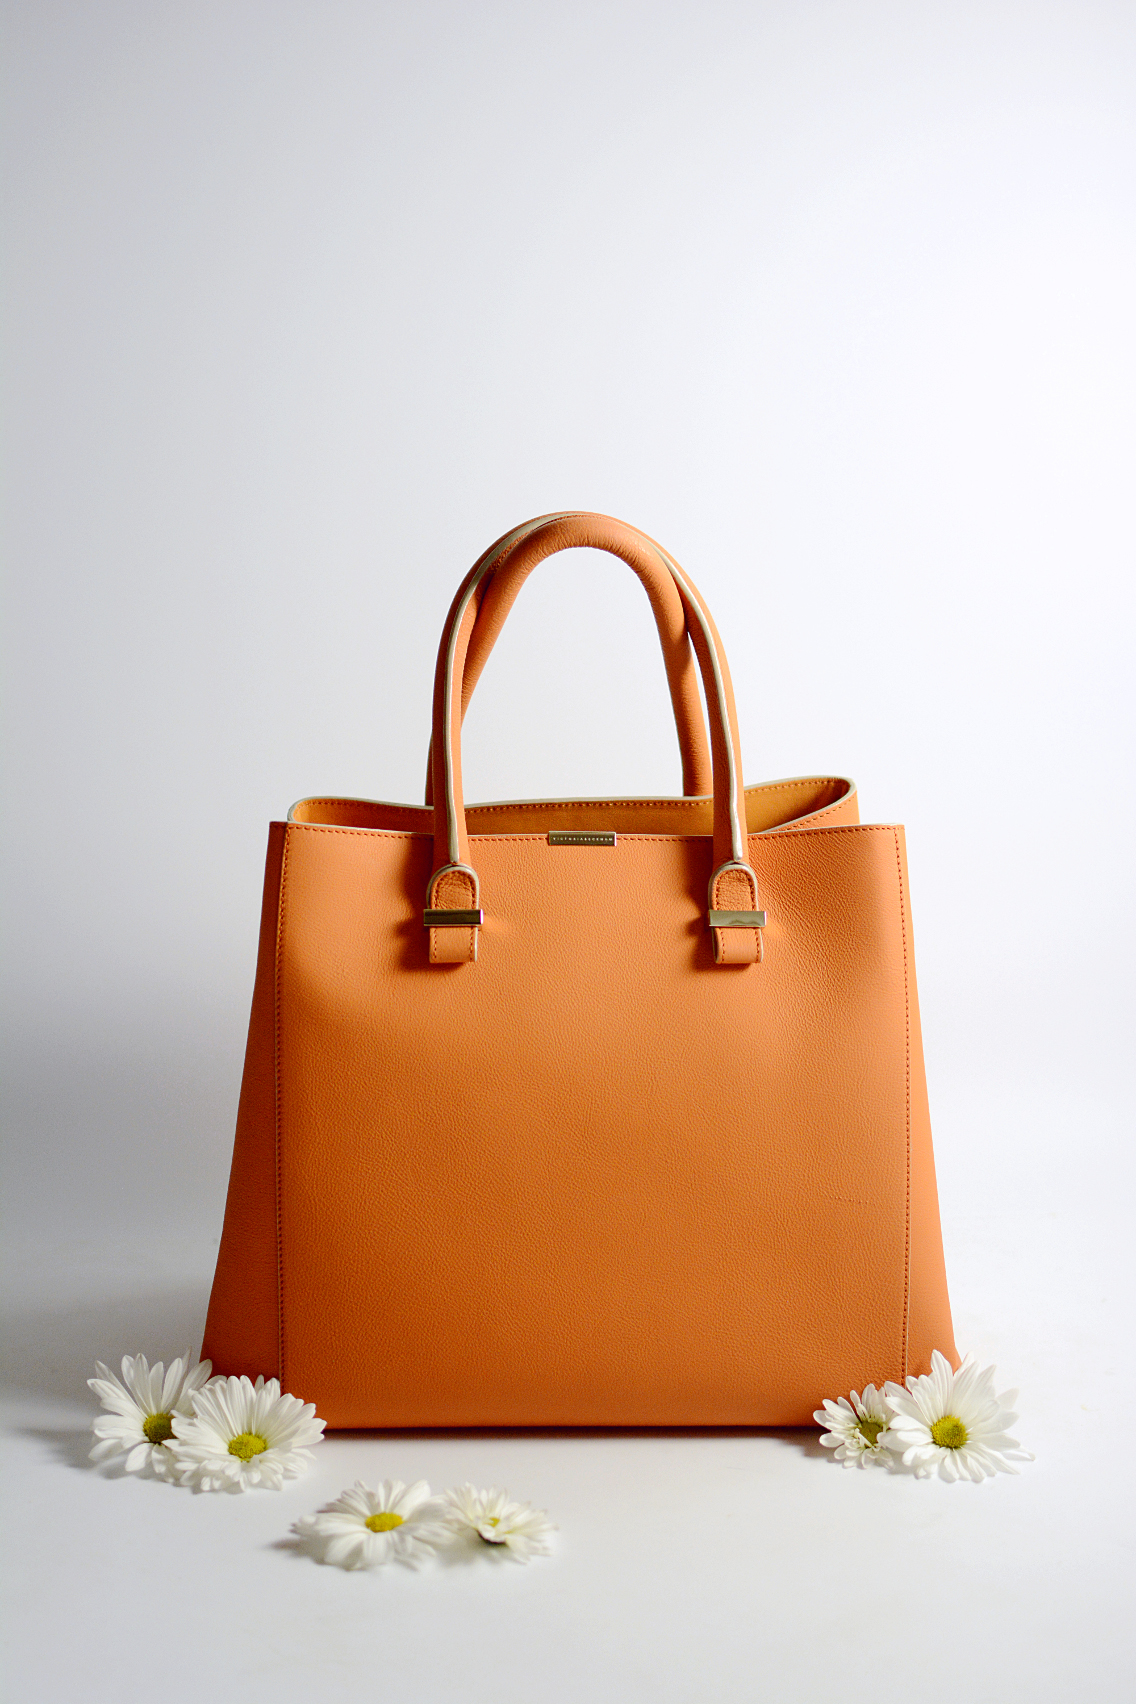 Victoria Beckham Liberty Tote Persimmon Orange 17